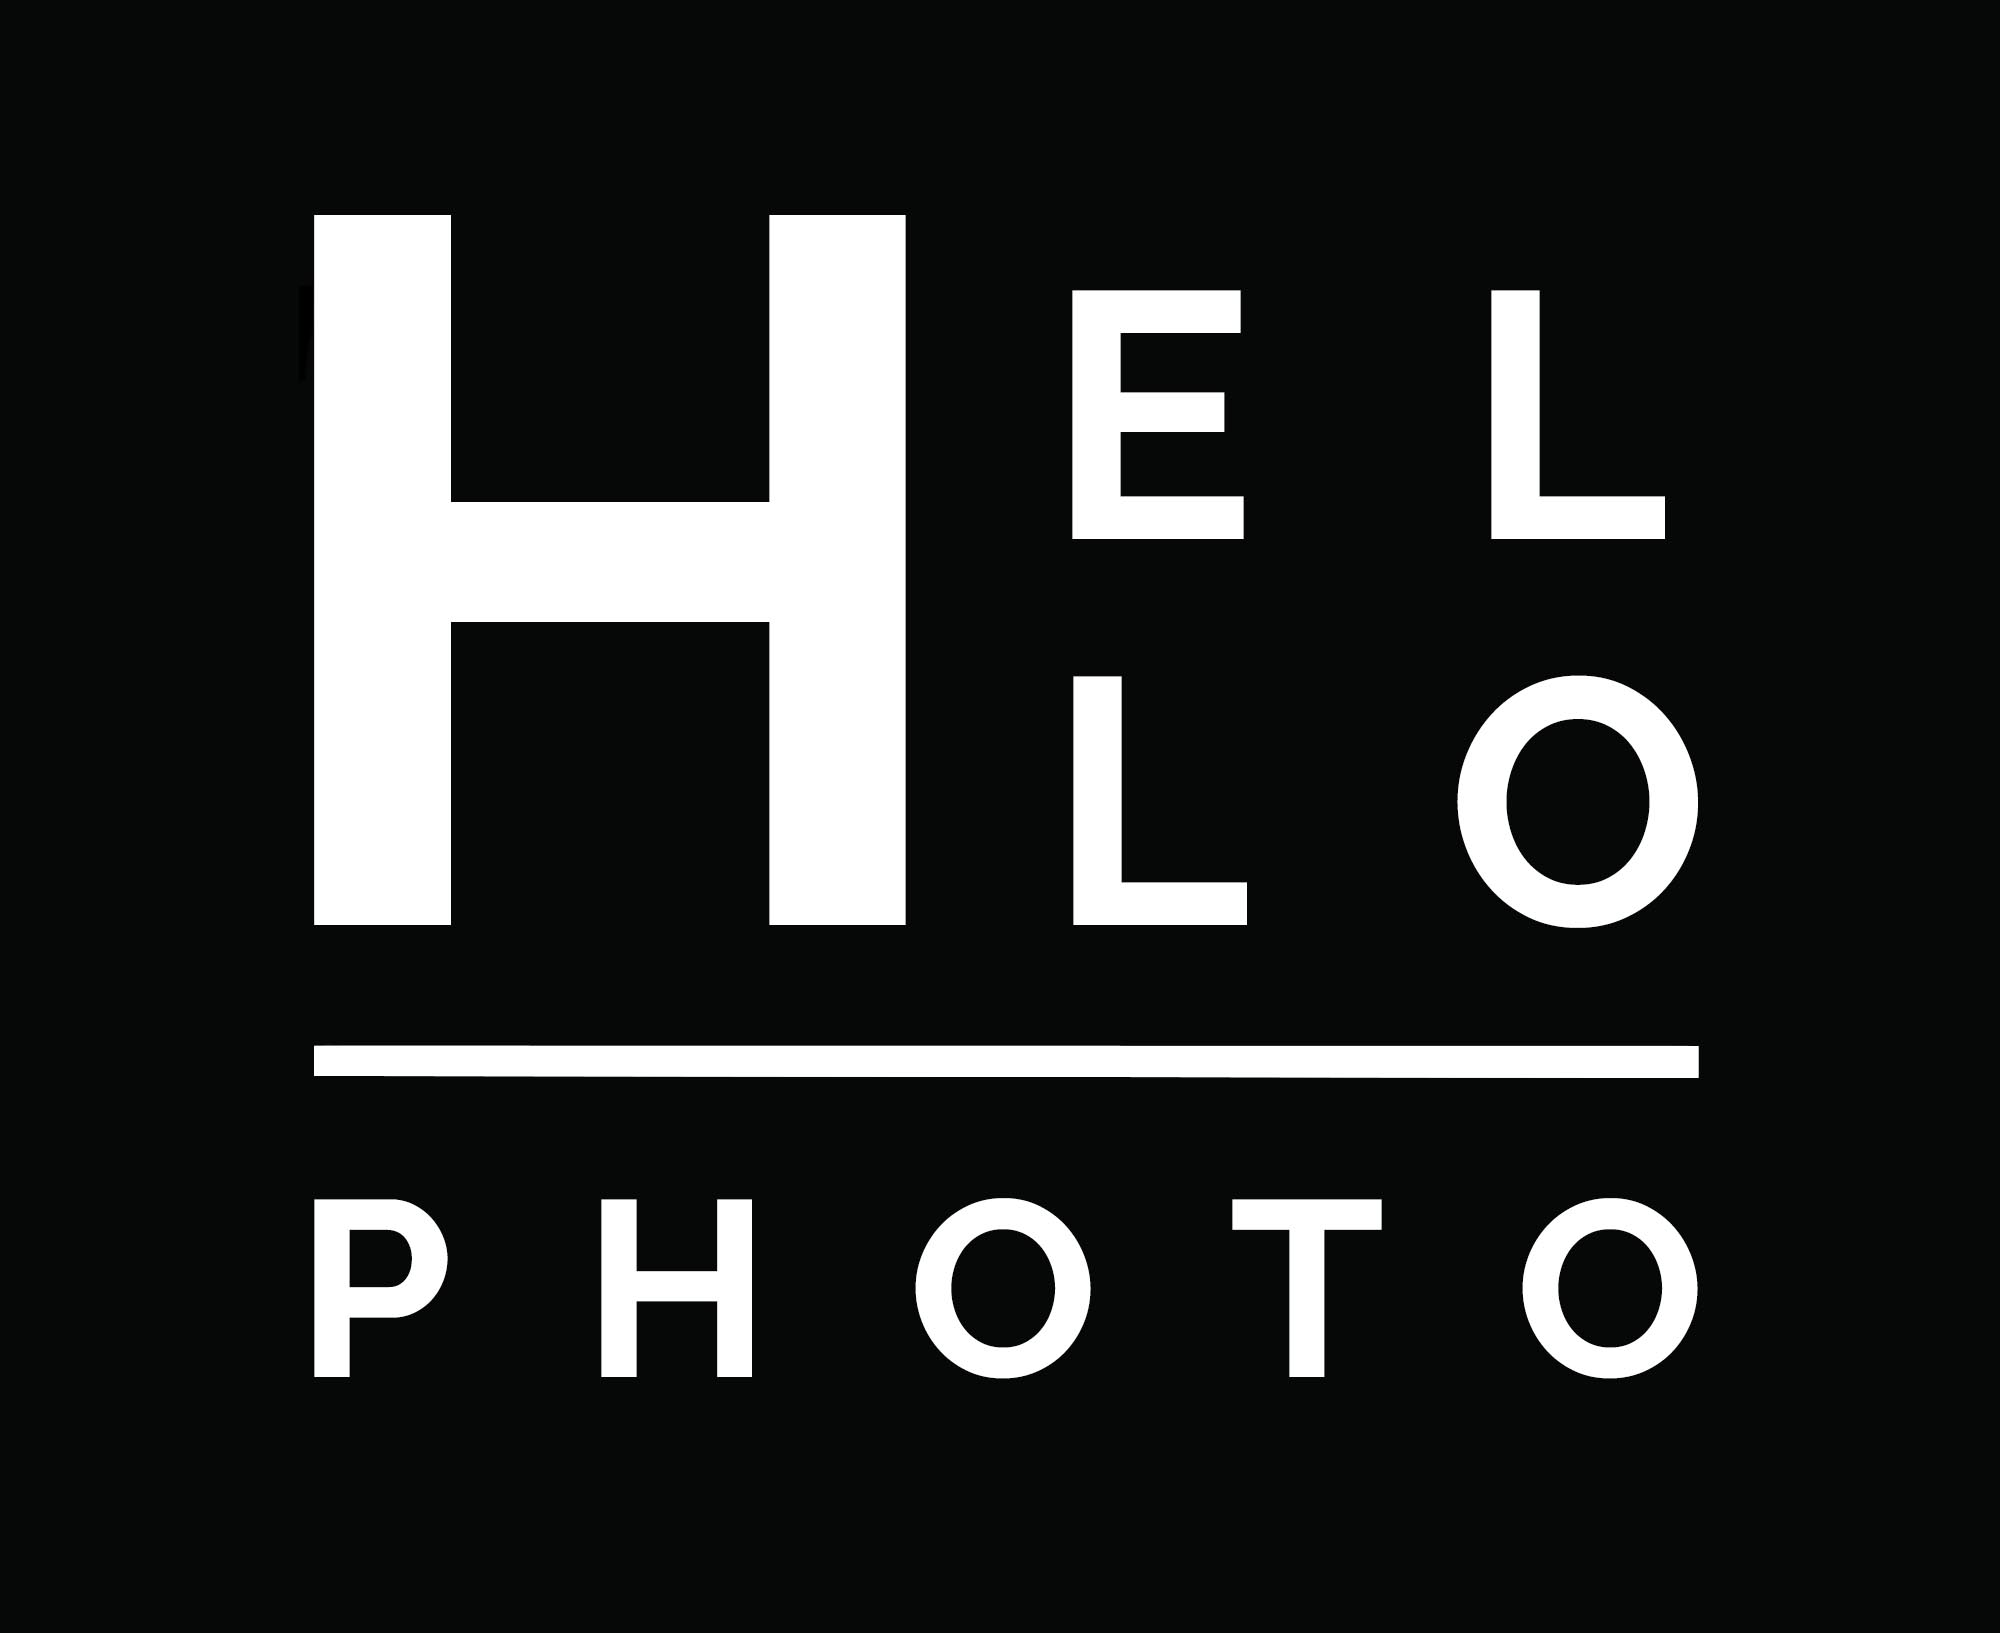 Check out our sister site - Hello Photo